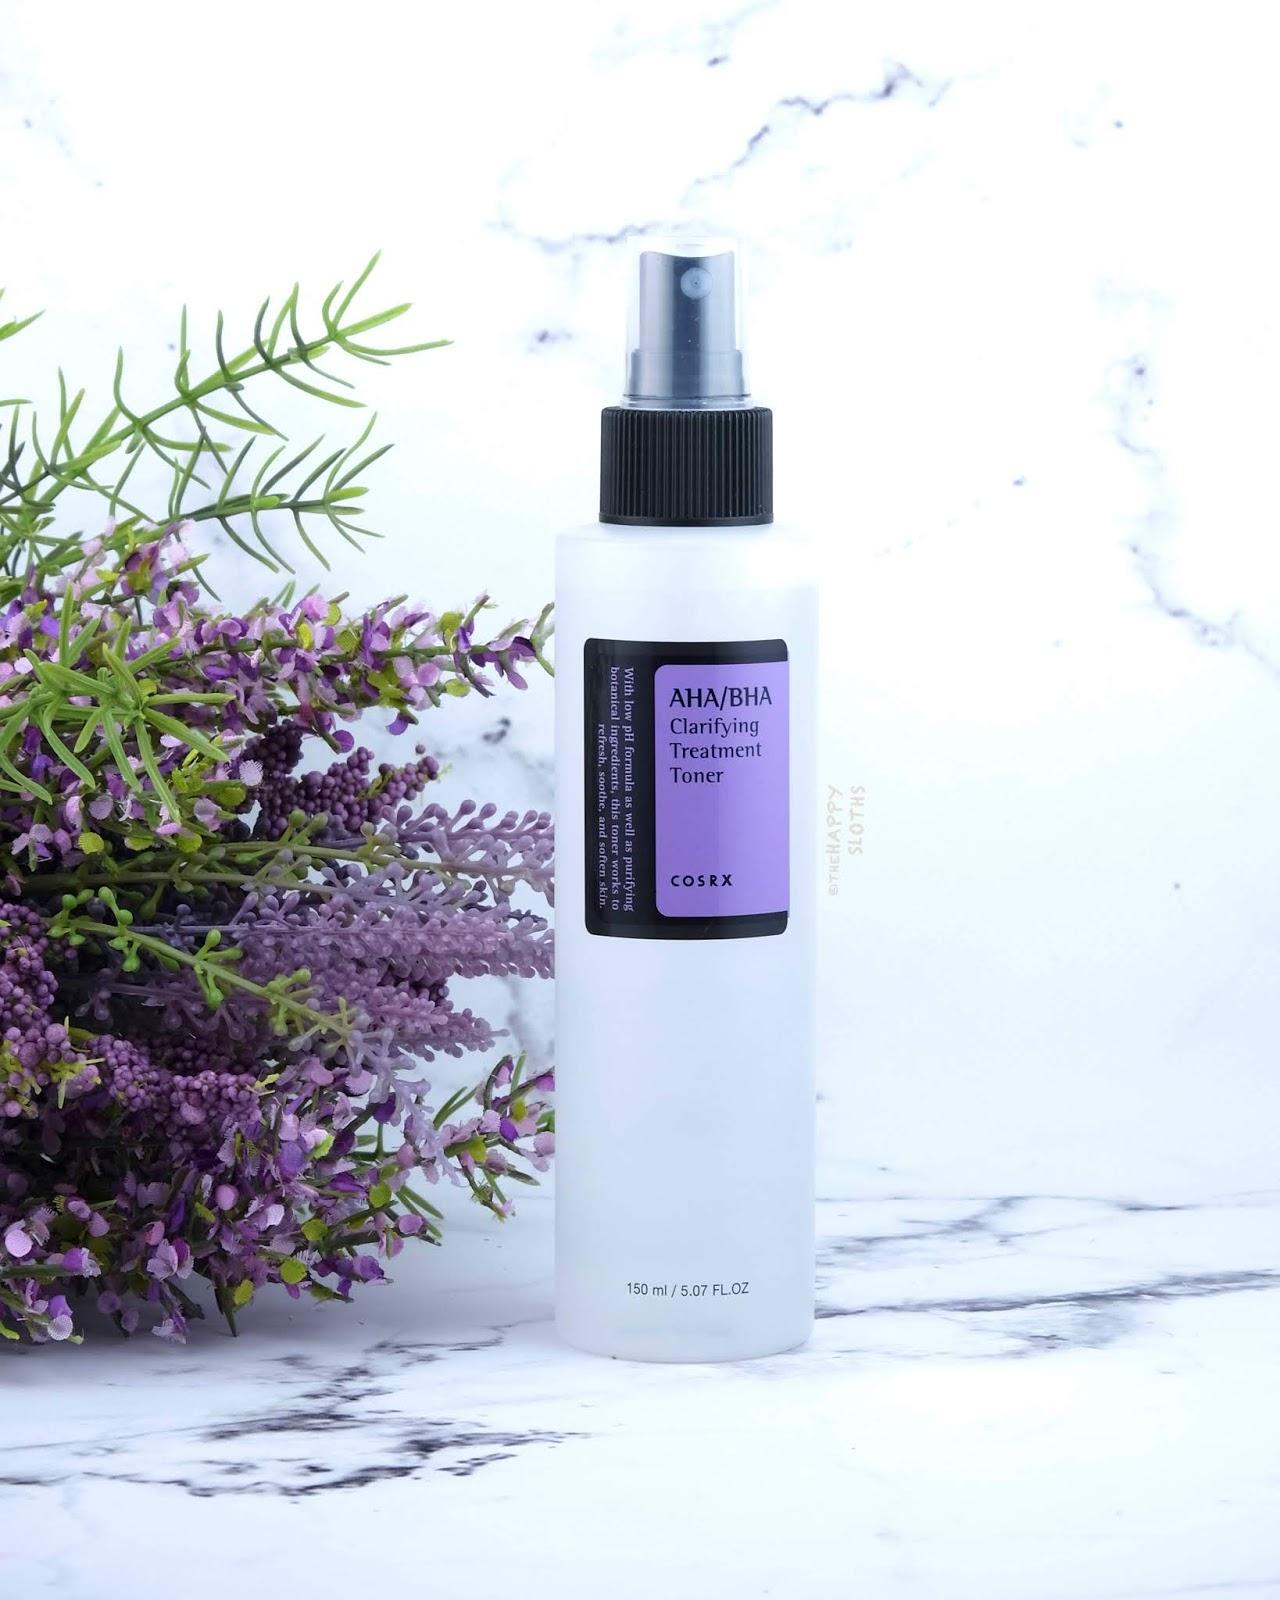 COSRX | AHA/BHA Clarifying Treatment Toner: Review